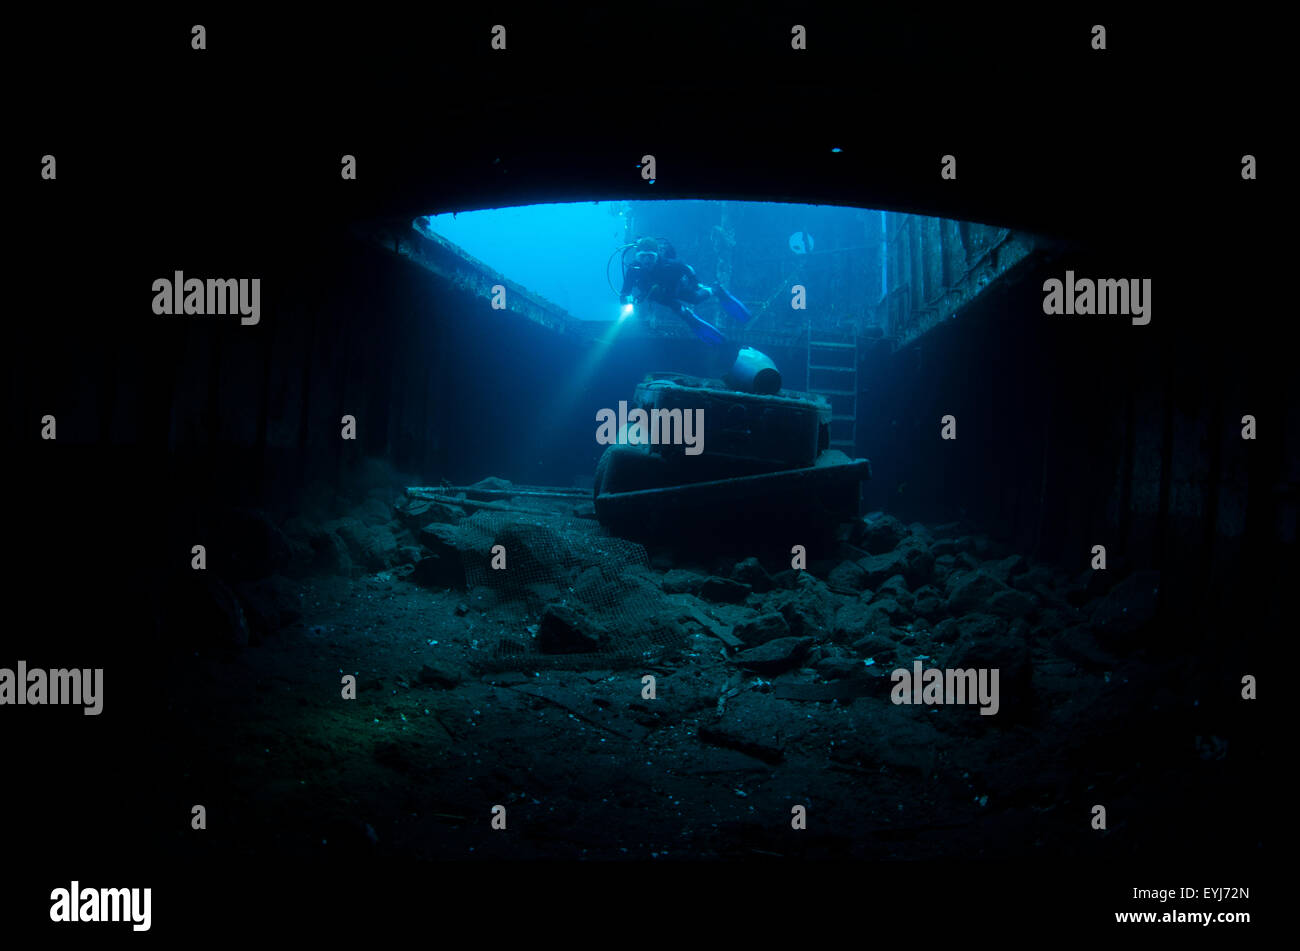 A diver descends into the hull of the purposefully sunk artificial reef known as the Kubu Shipwreck in Tulamben, - Stock Image